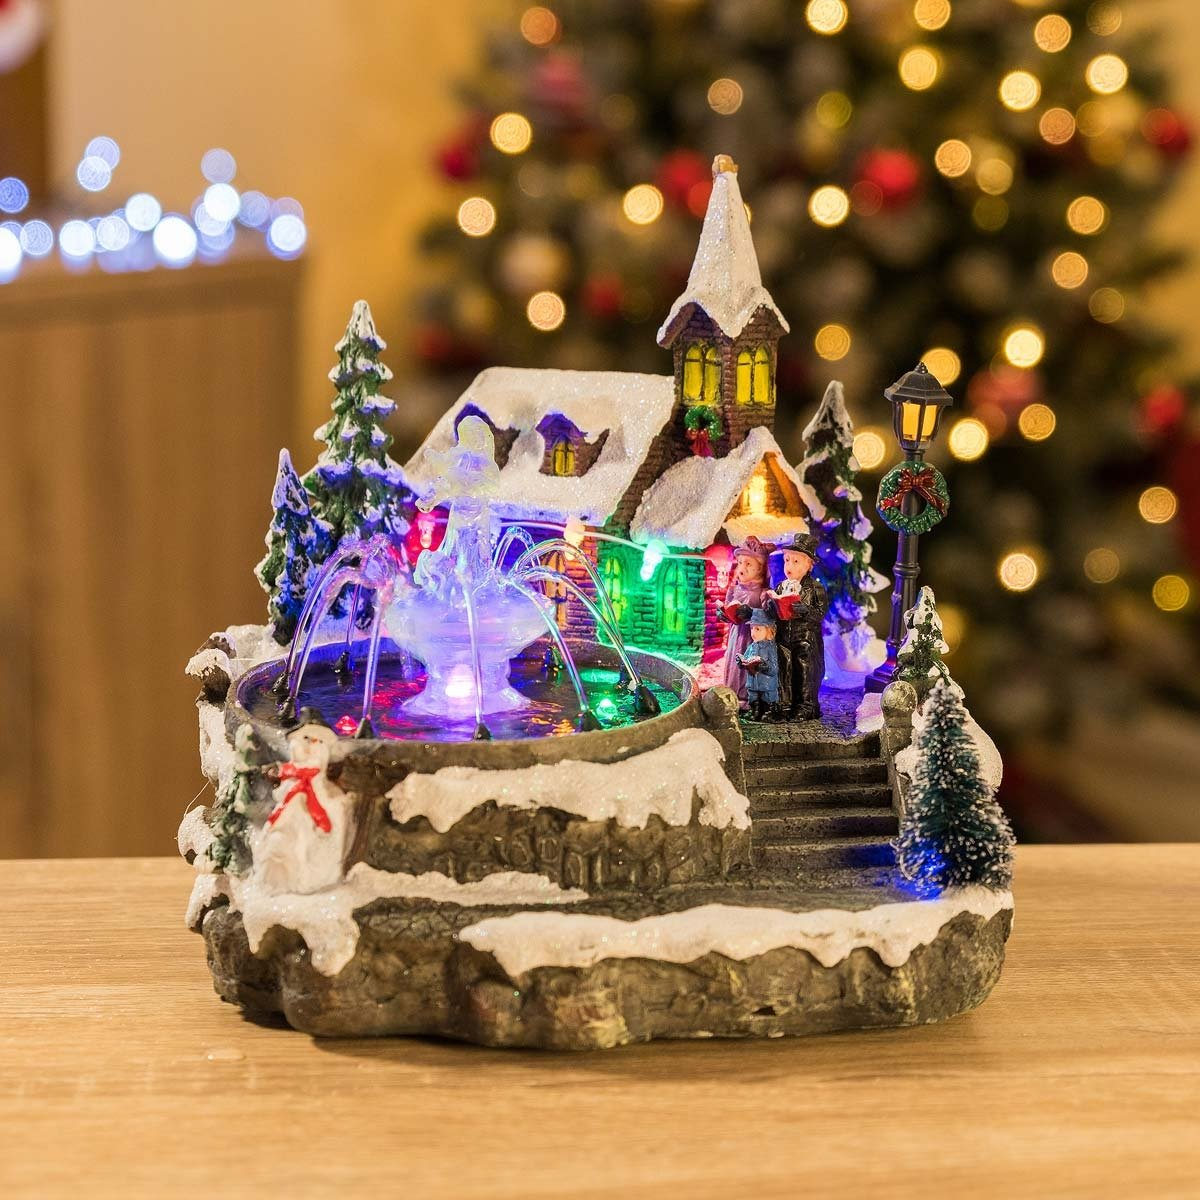 LED Christmas Village Church Scene Musical Table Top Fountain Indoor Decoration Christow Decorations